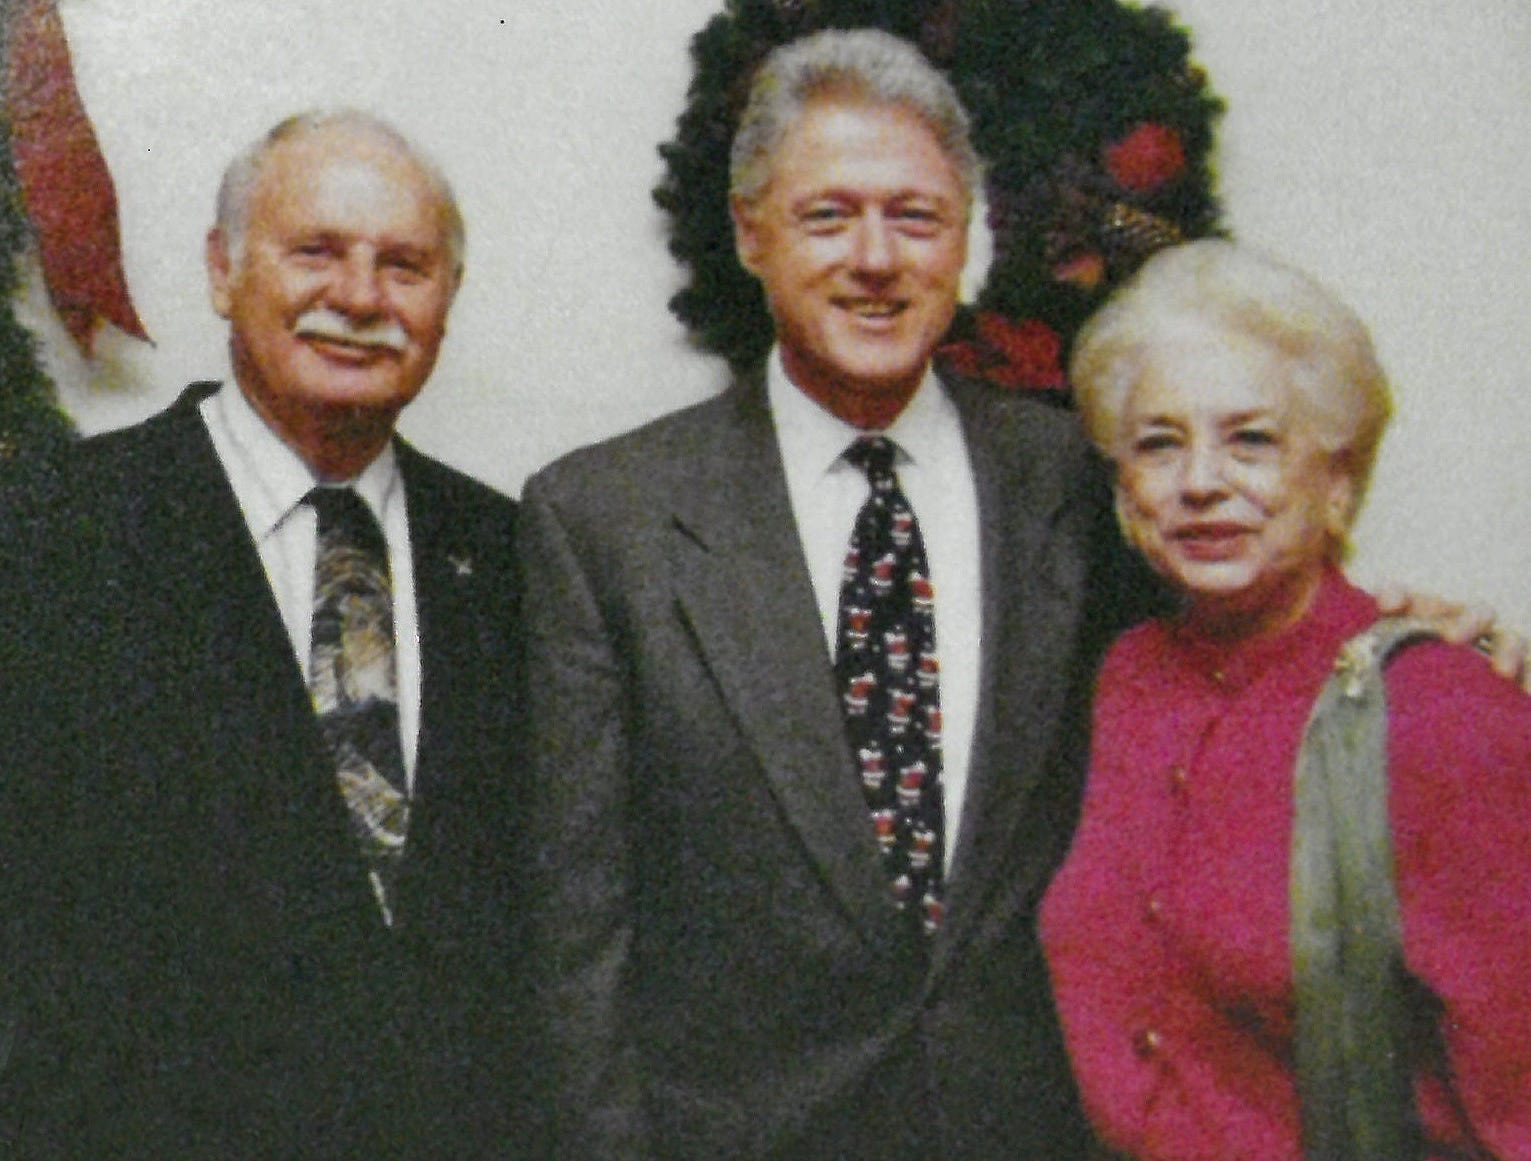 Mary Ellen Withrow, right, as US Treasurer with President Bill Clinton and her husband, Norman.